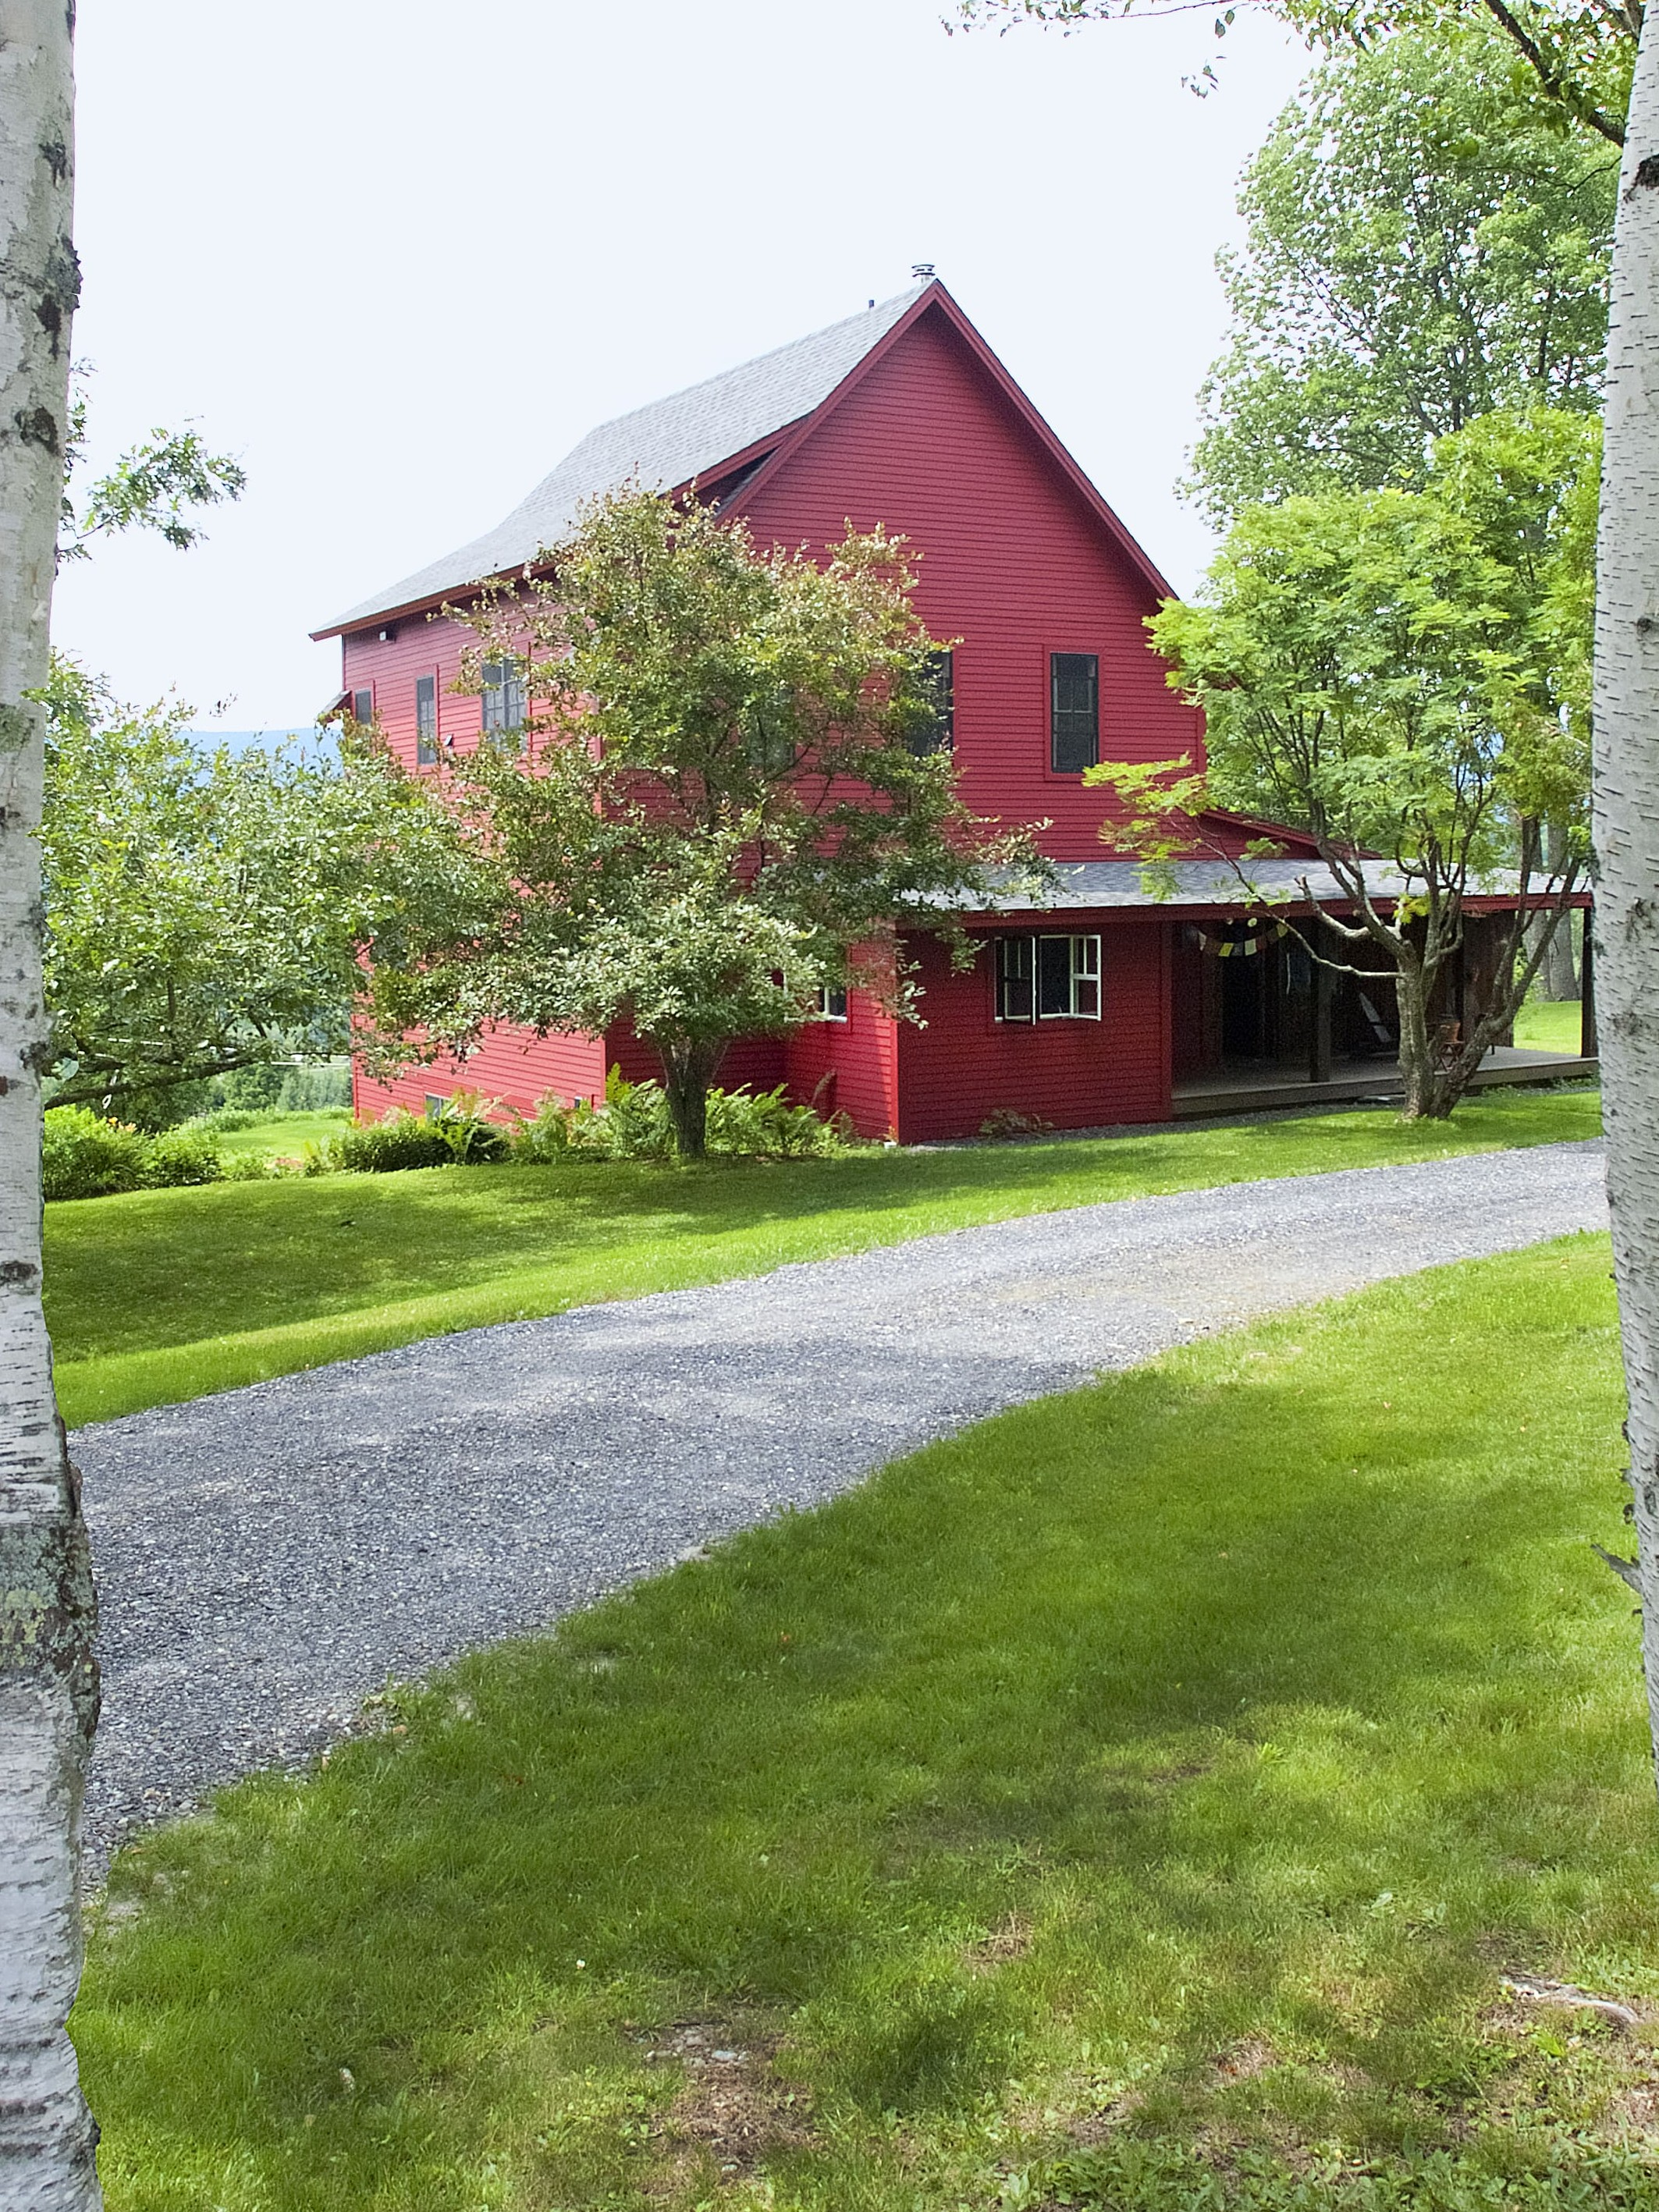 A wide shot of a fully remodeled two story red central vermont farmouse